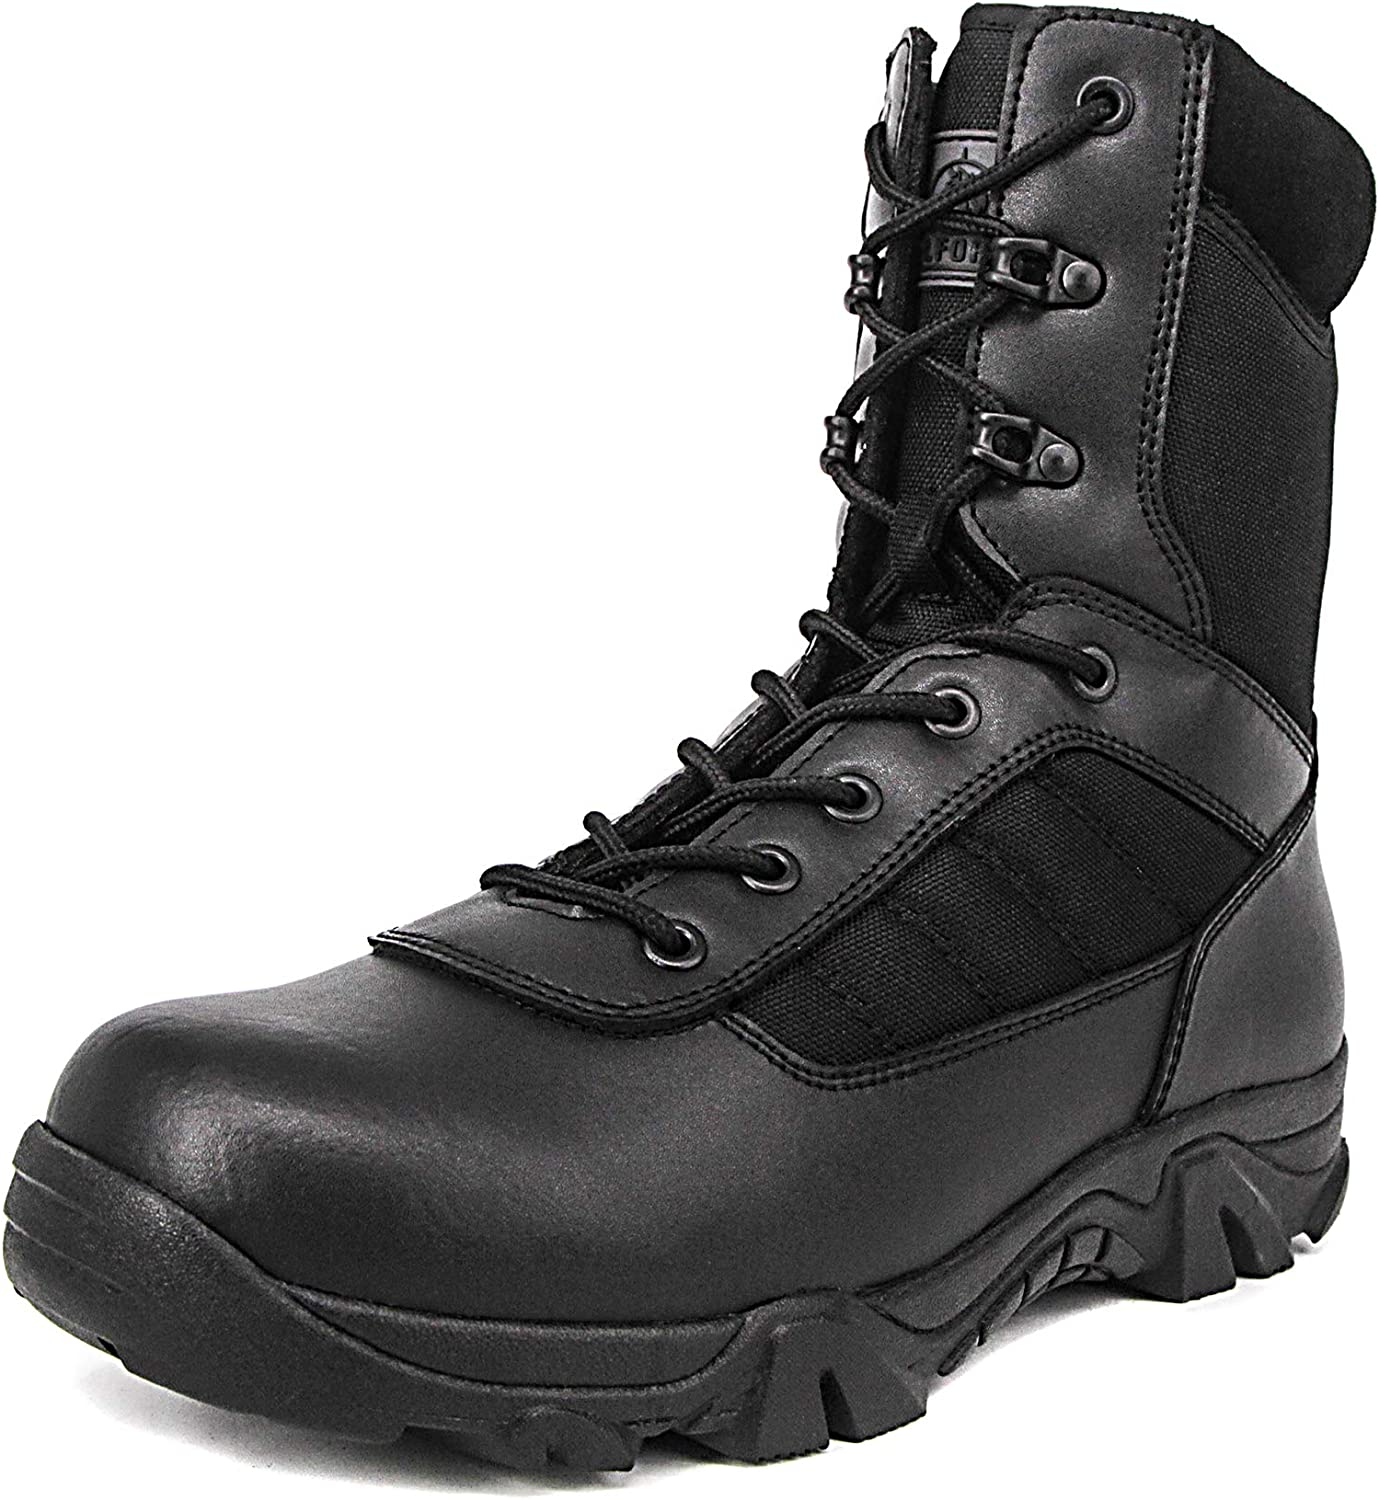 Milforce Men's 8 Inch Military Tactical Boots Combat Desert Duty Work shoes with Side Zipper